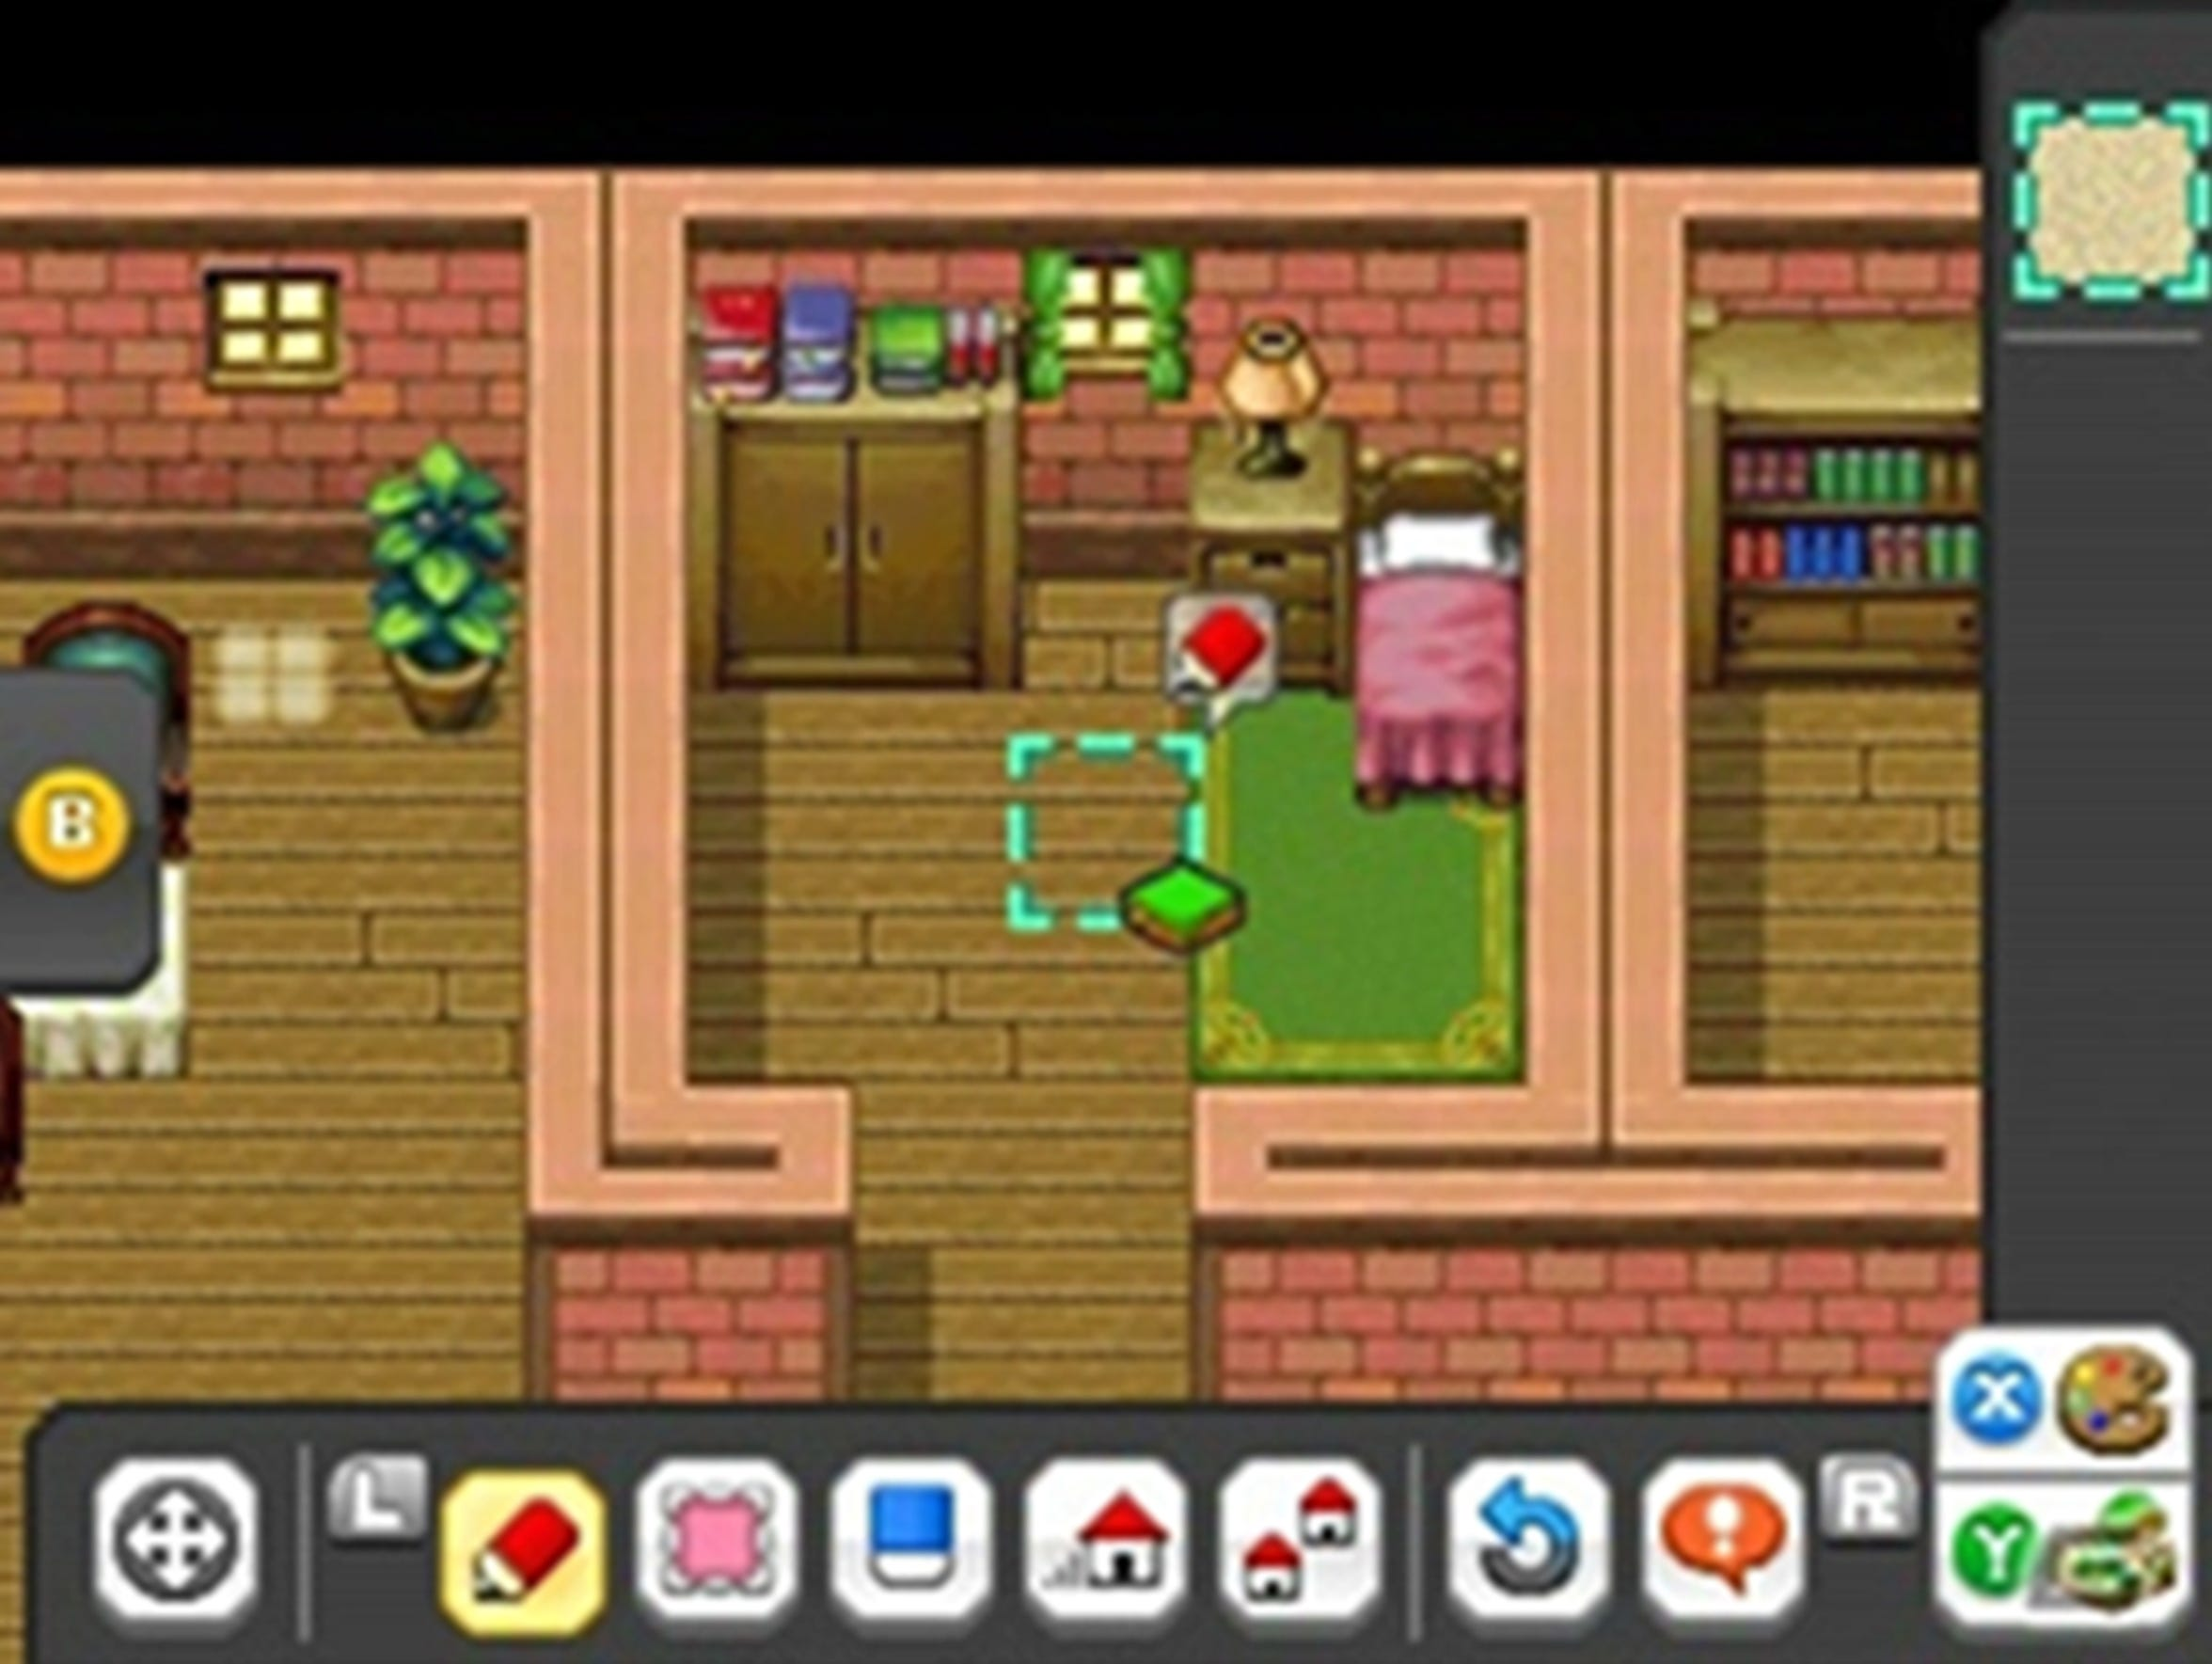 RPG Maker Fes, Nintendo 3DS.